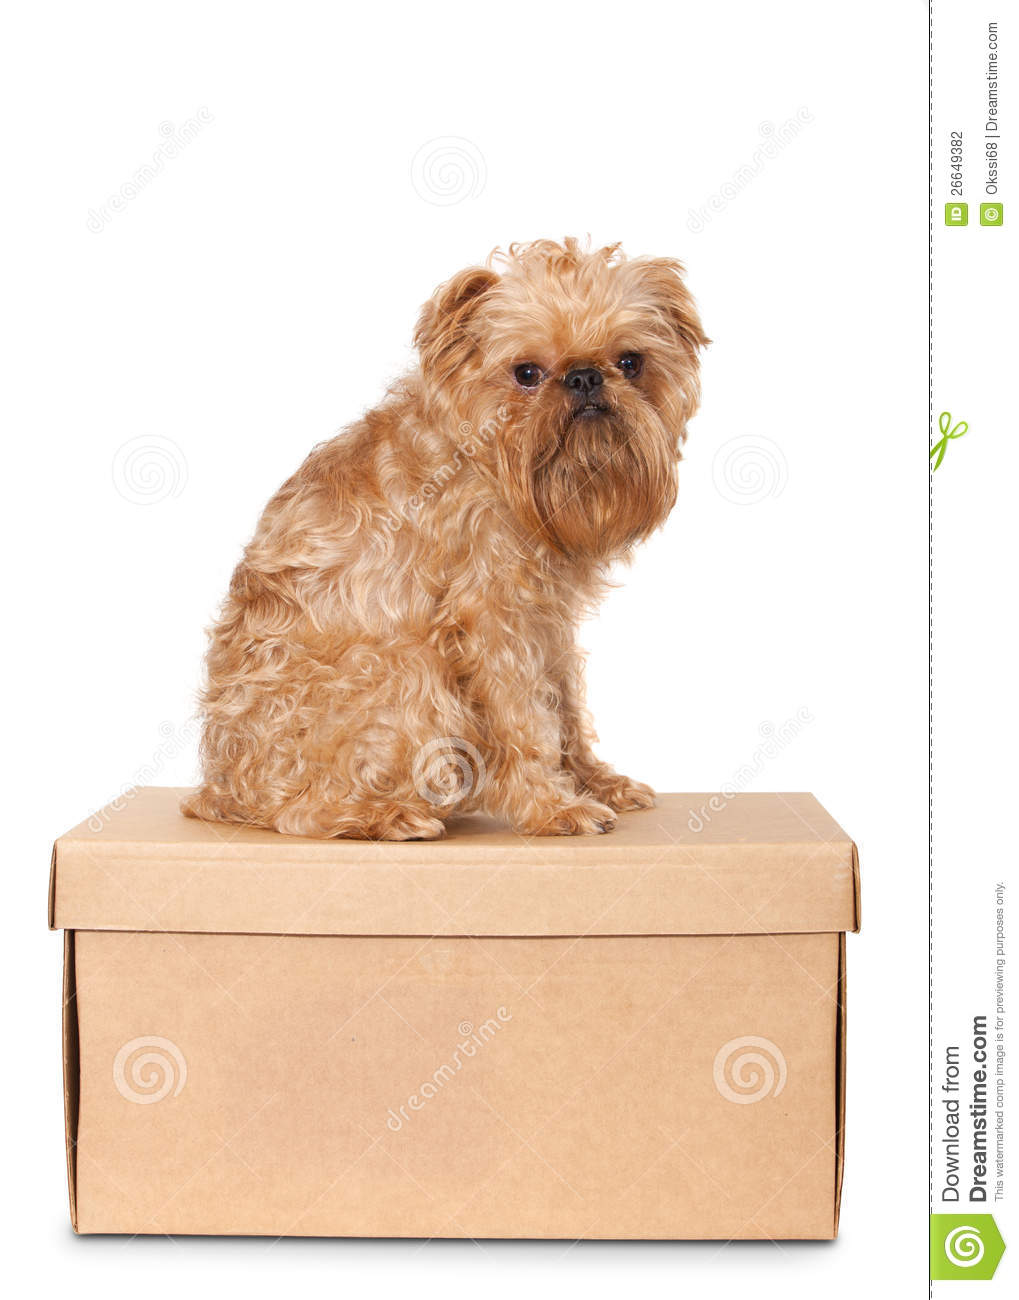 Dog On Cardboard Box Stock Photography - Image: 26649382